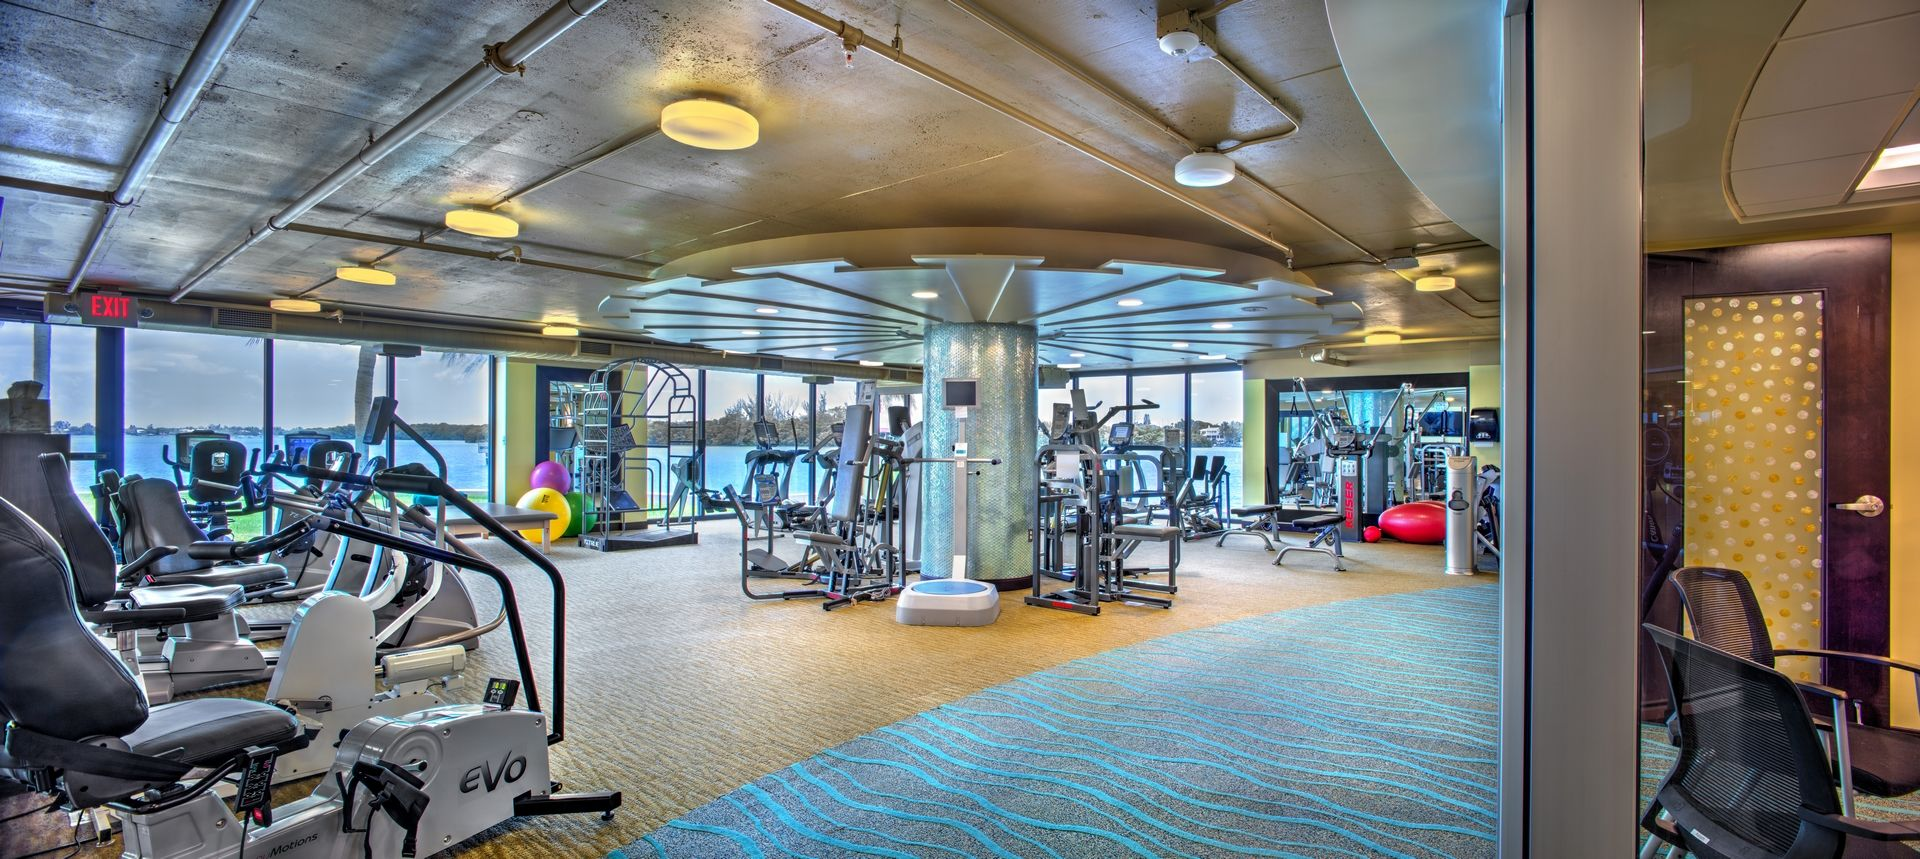 Plymouth Harbor Wellness Center Sarasota Fl Thw Design